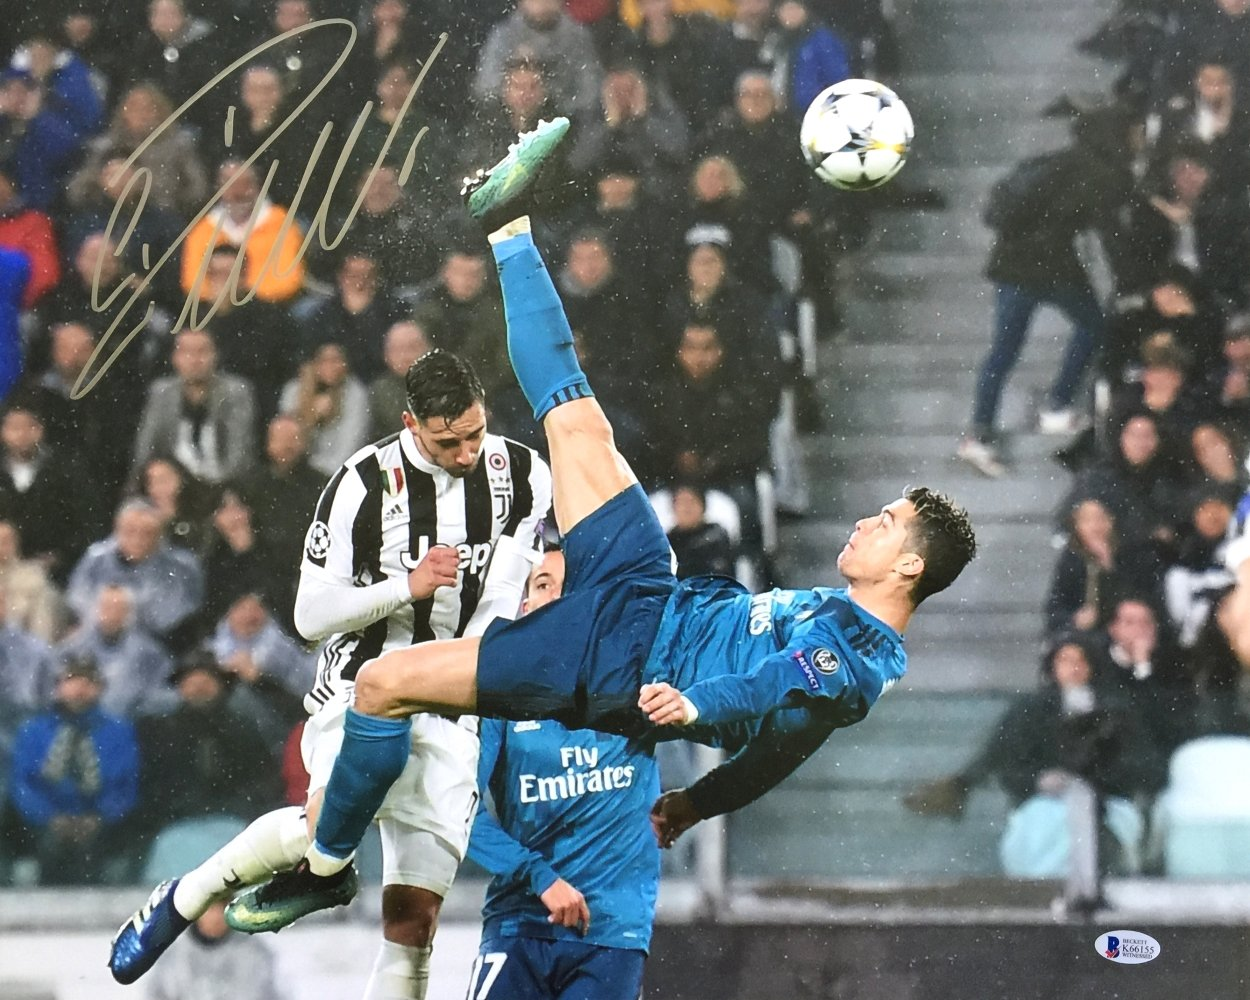 33d5125e06a Cristiano Ronaldo Signed 16x20 Real Madrid vs Juventus 2018 Champions  League Bicycle Kick Photo BAS at Amazon s Sports Collectibles Store